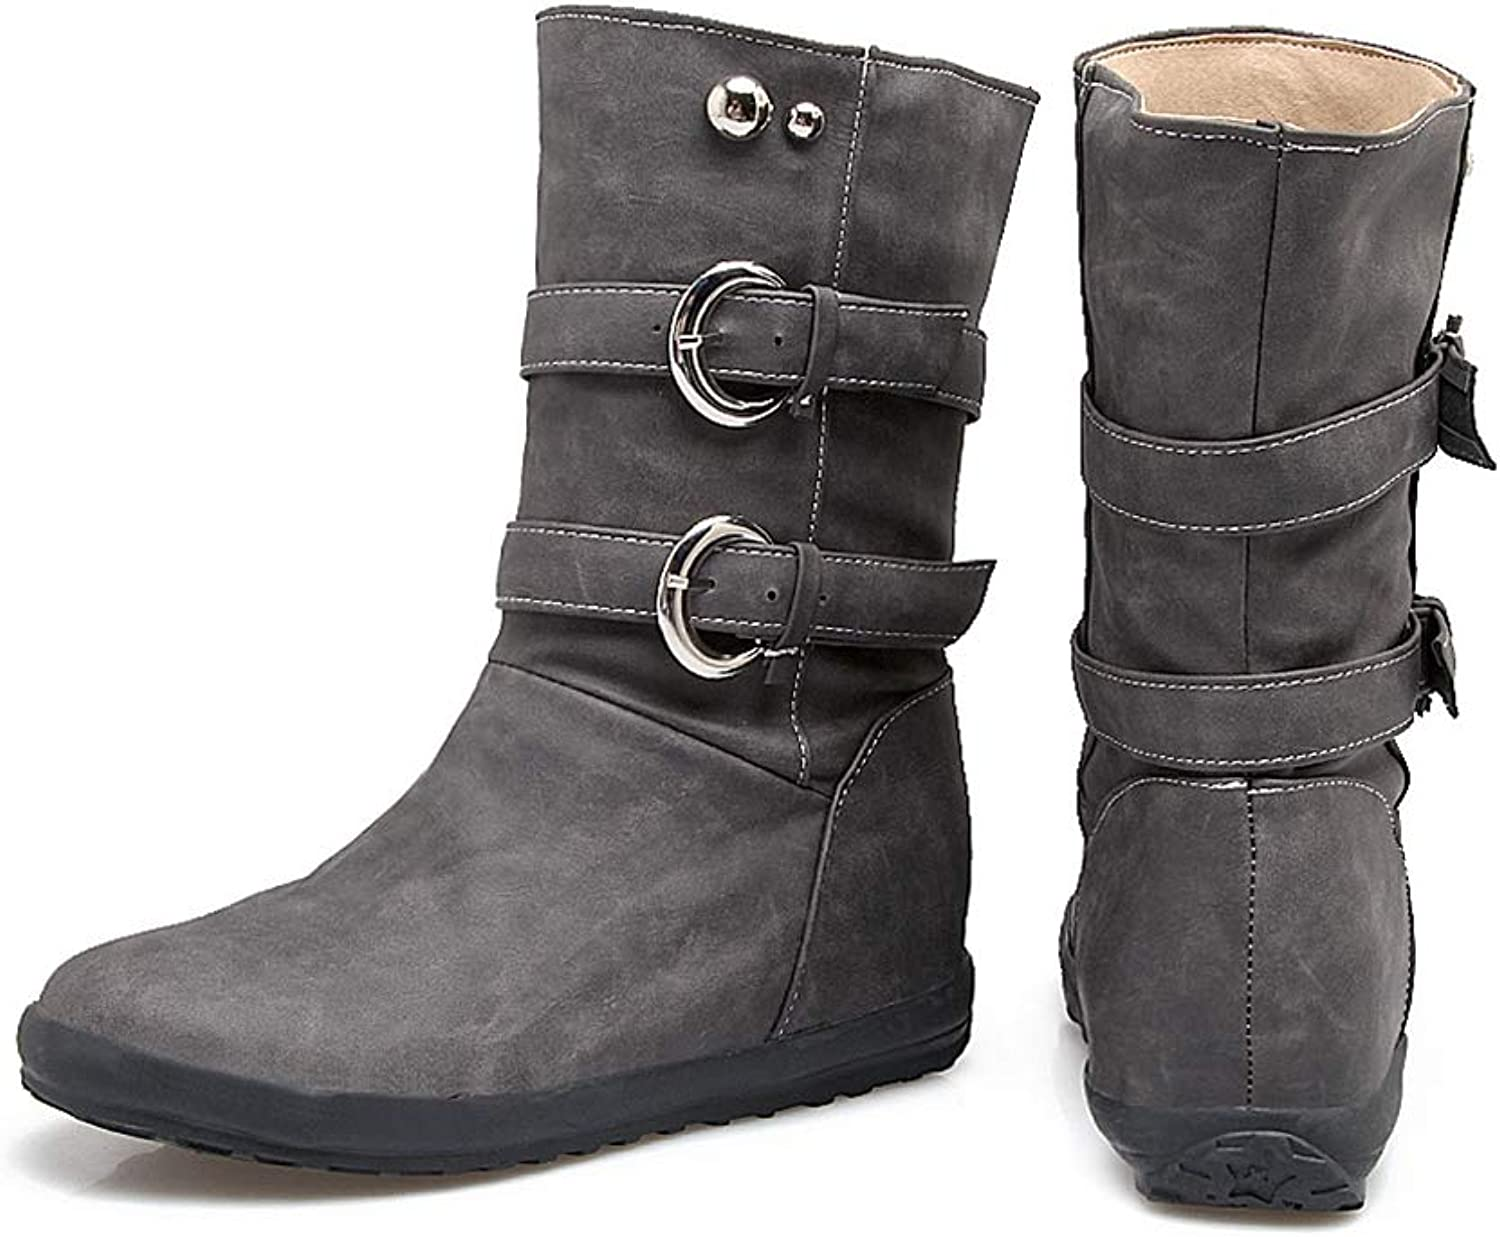 Sam Carle Women Boots, Fashion Solid color Metal Buckle Slip On Round Toe Mid-Calf Boots